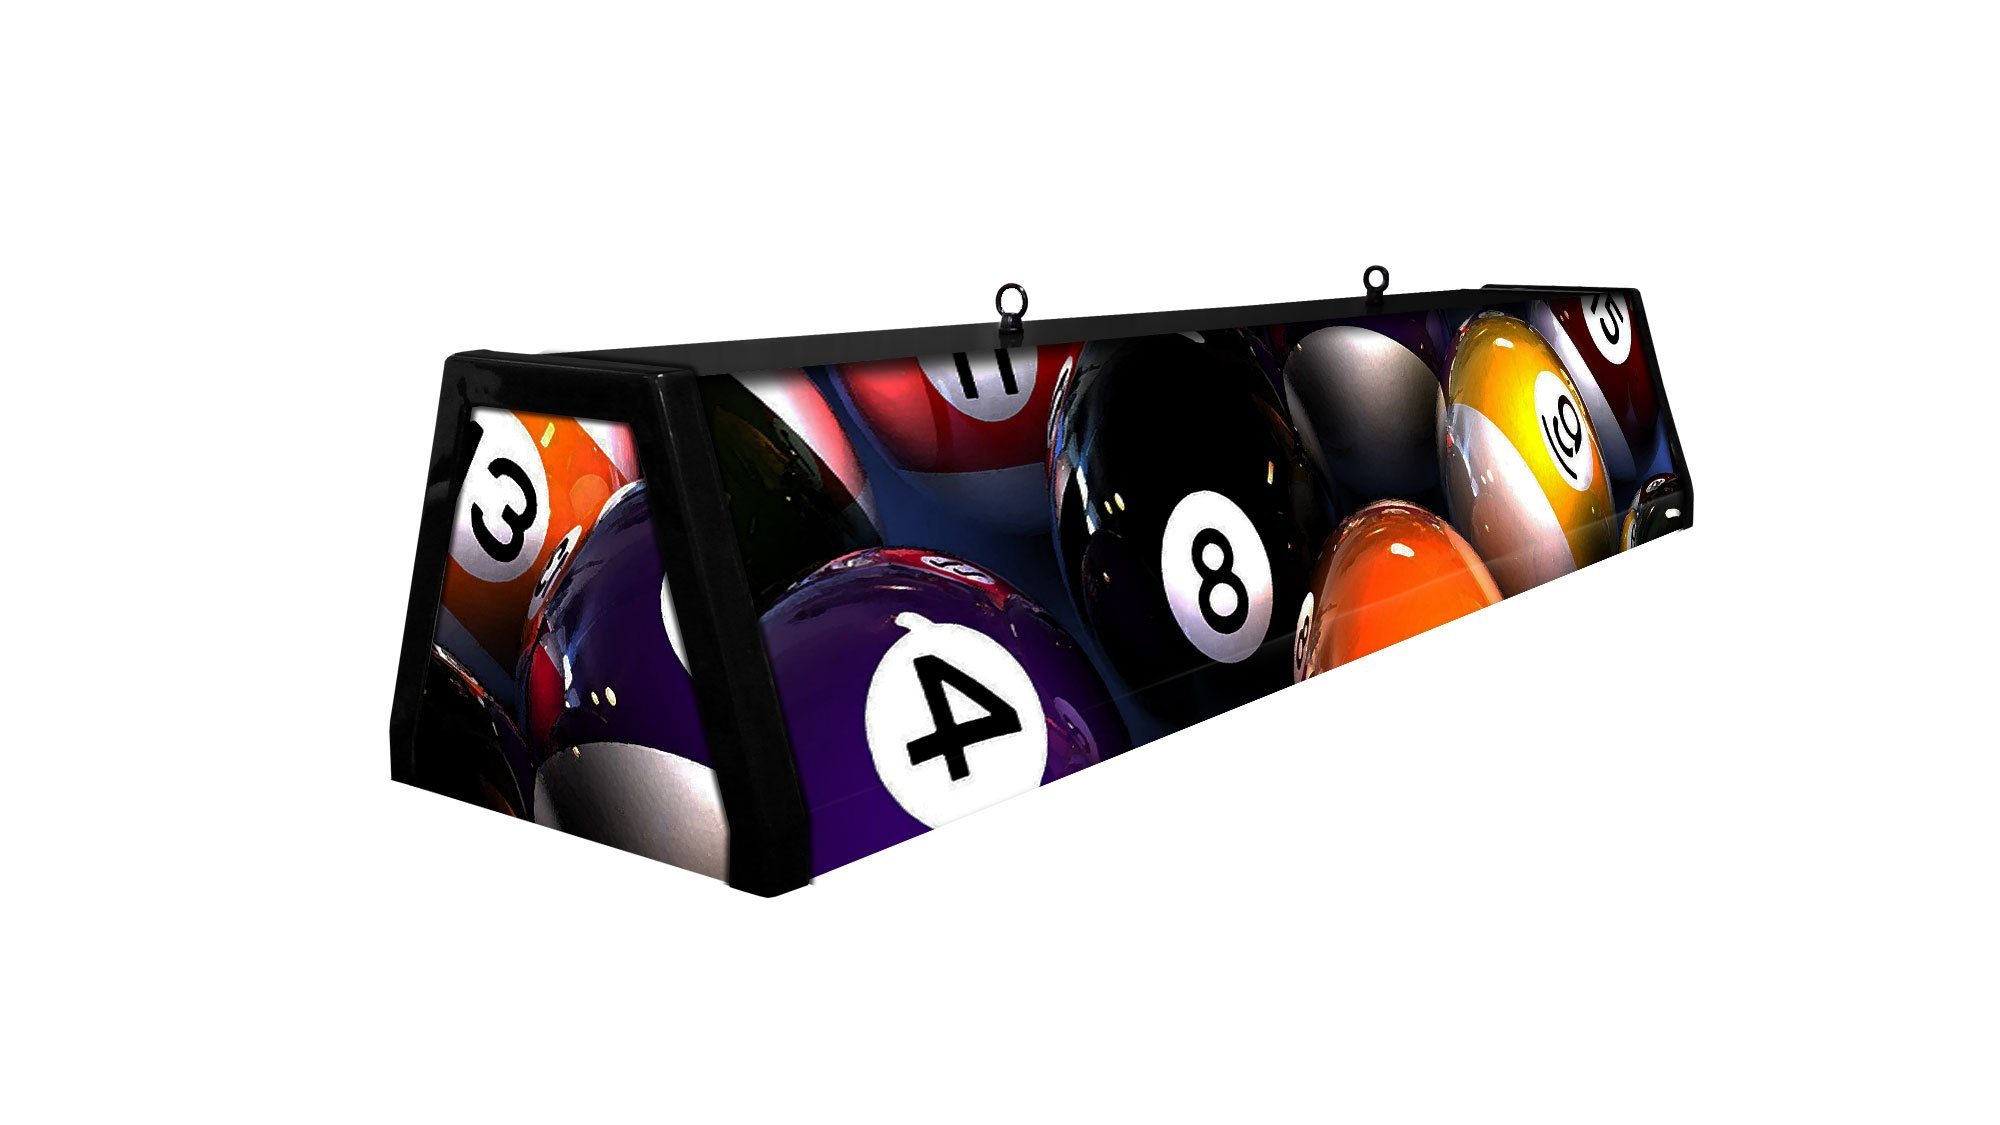 44'' Acrylic Pool Table Light, Rack'em Up